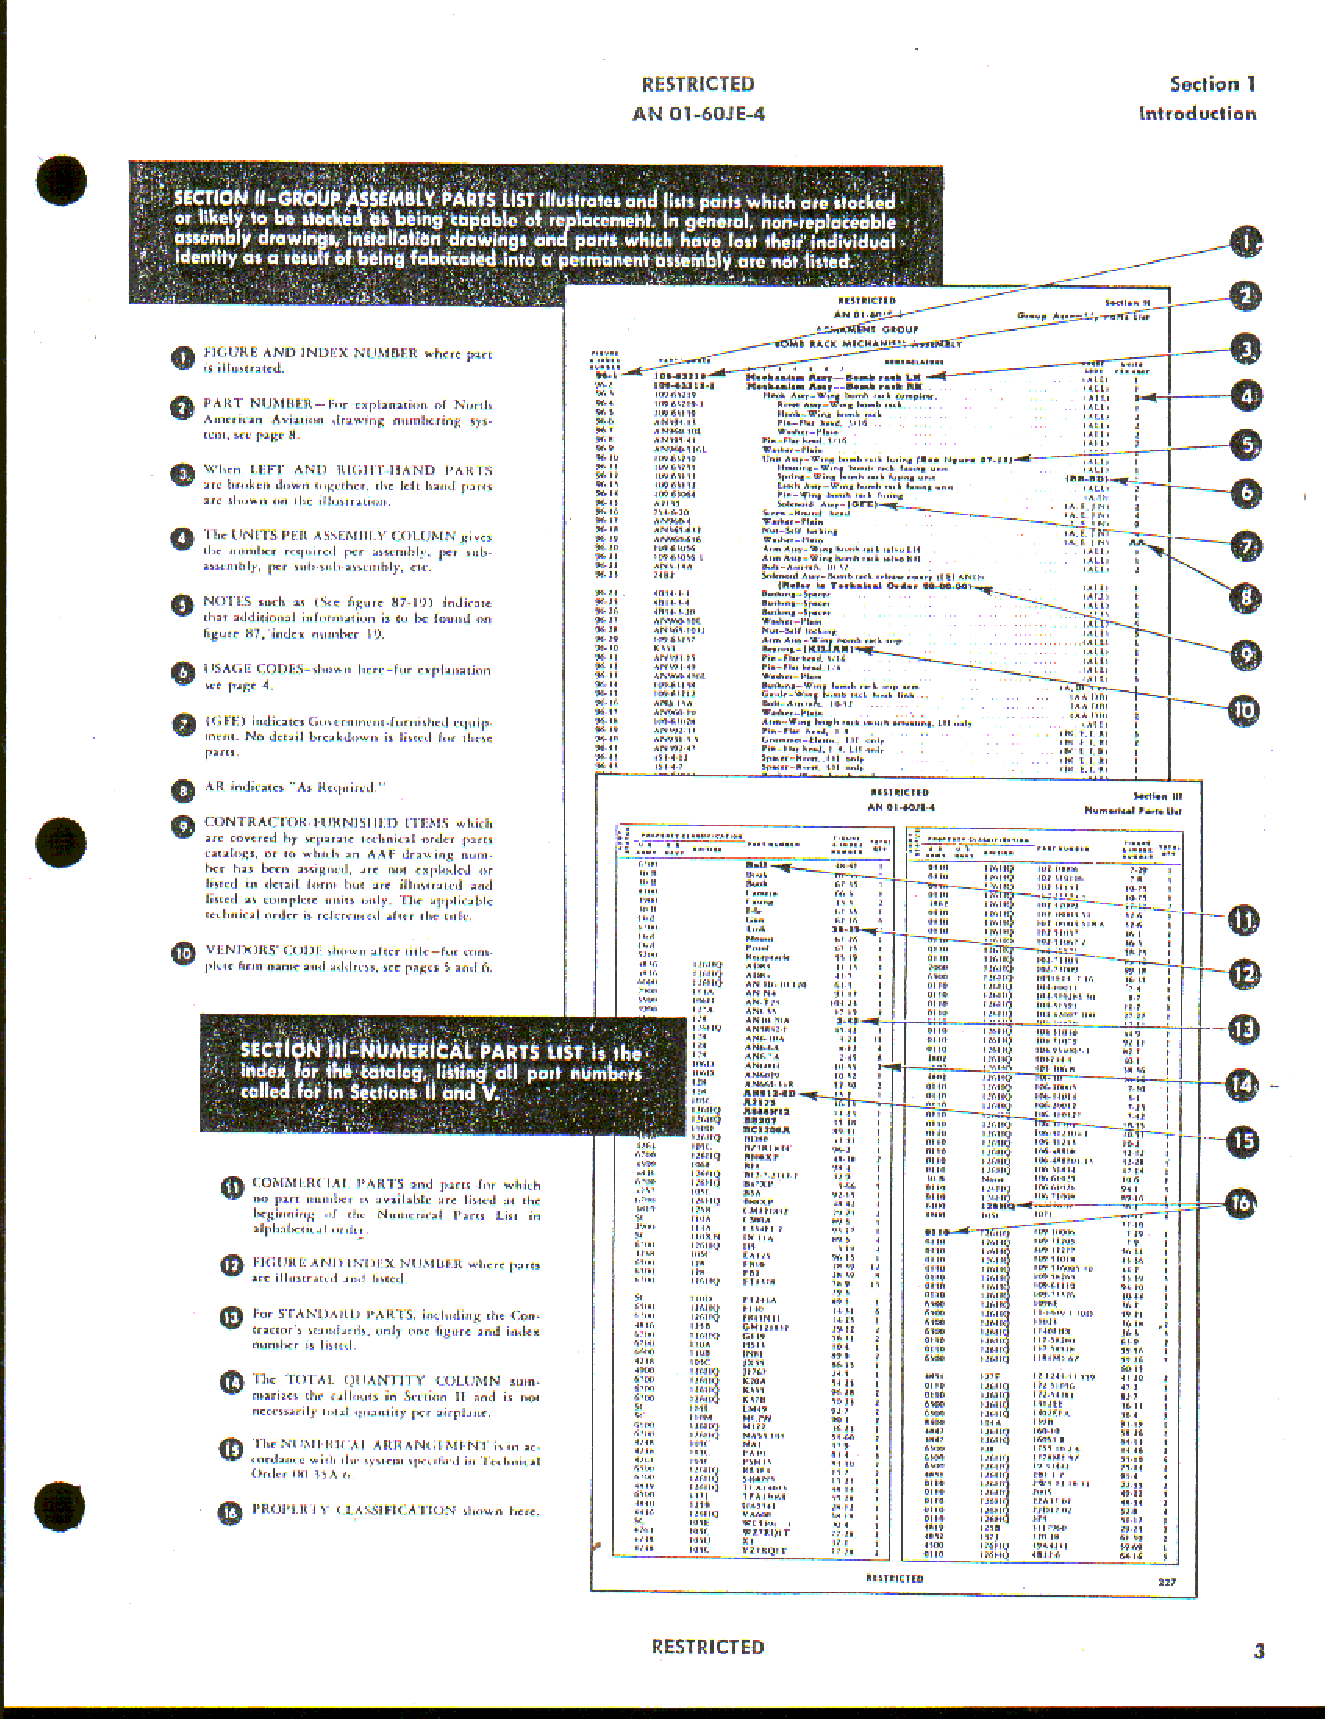 Sample page 5 from AirCorps Library document: Parts Catalog for P-51D and P-51K Aircraft